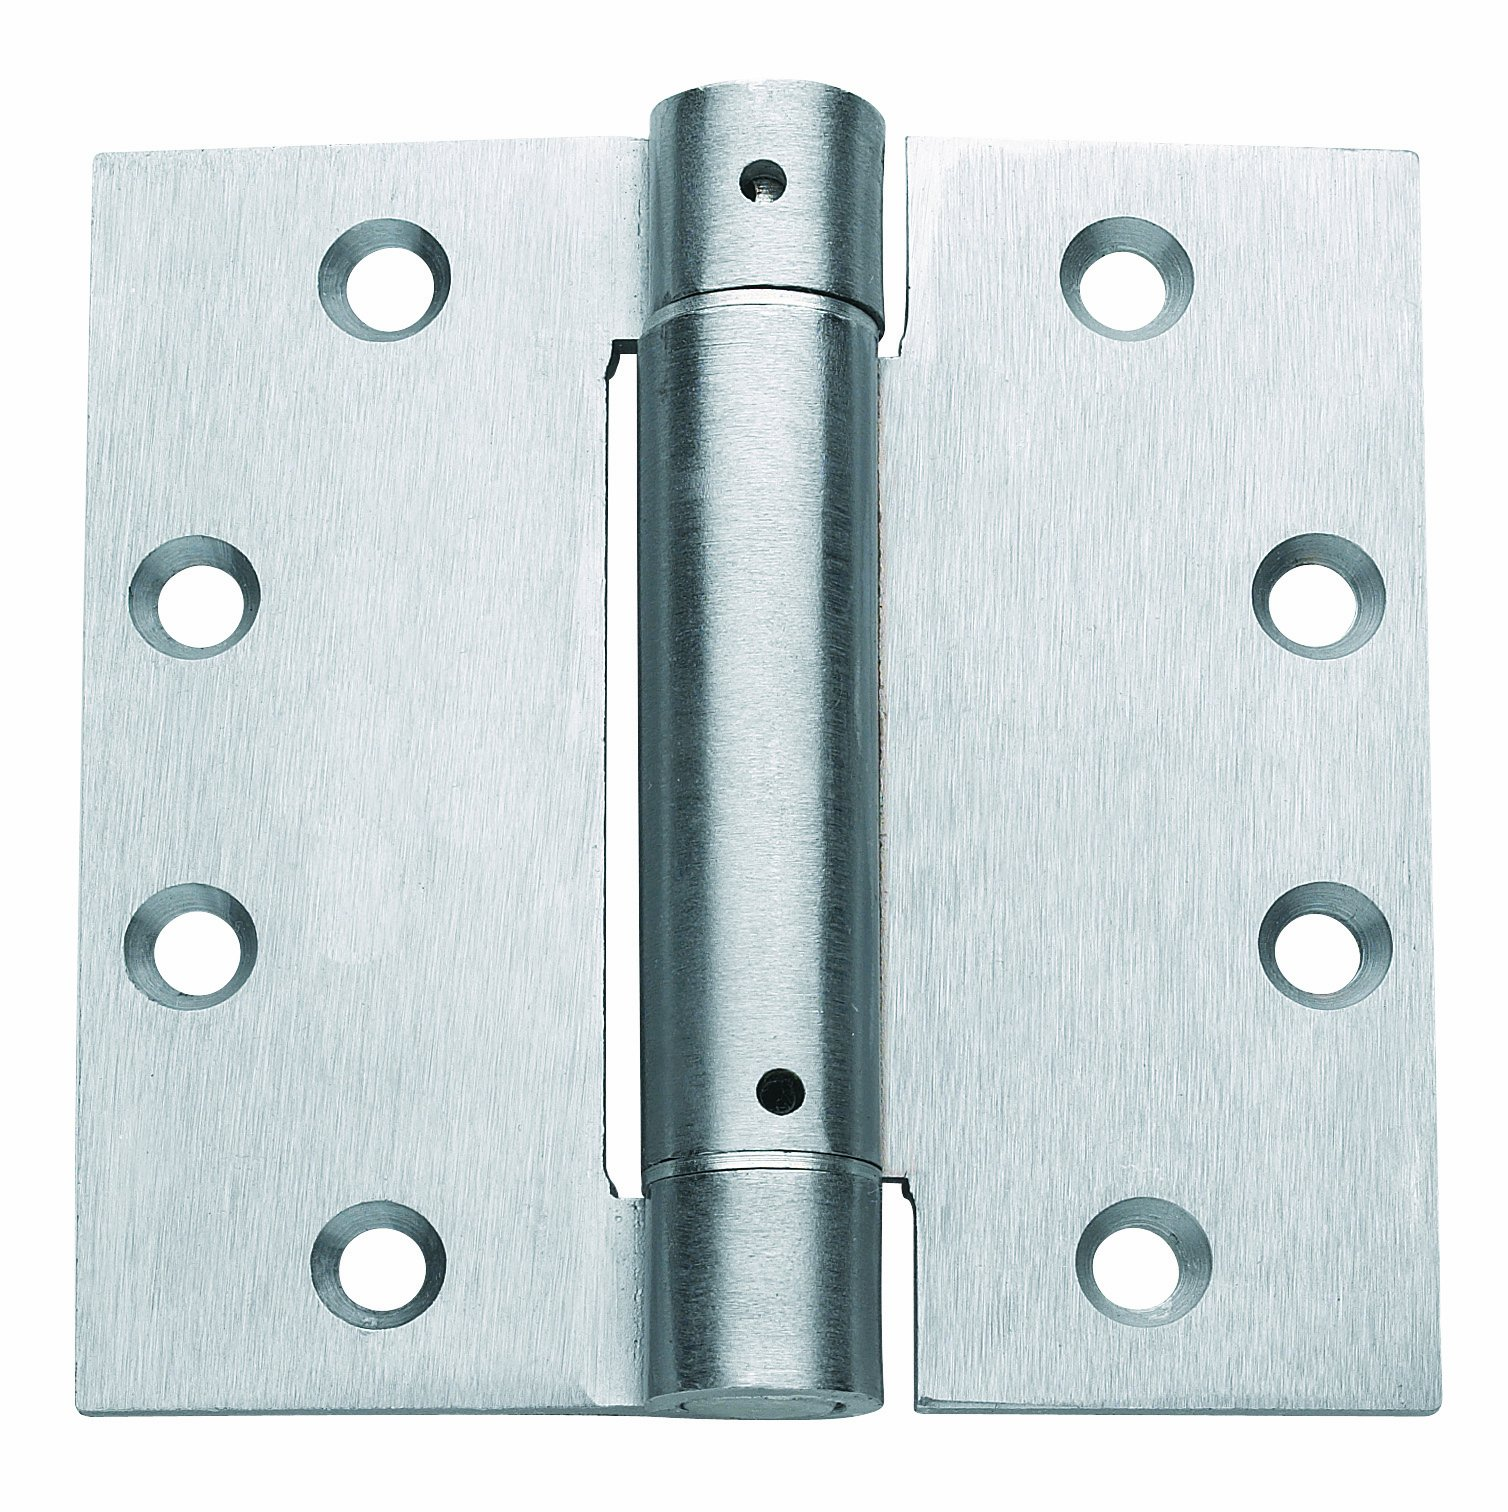 Global Door Controls 4.5 in. x 4.5 in. Brushed Chrome Steel Spring Hinge - Set of 3